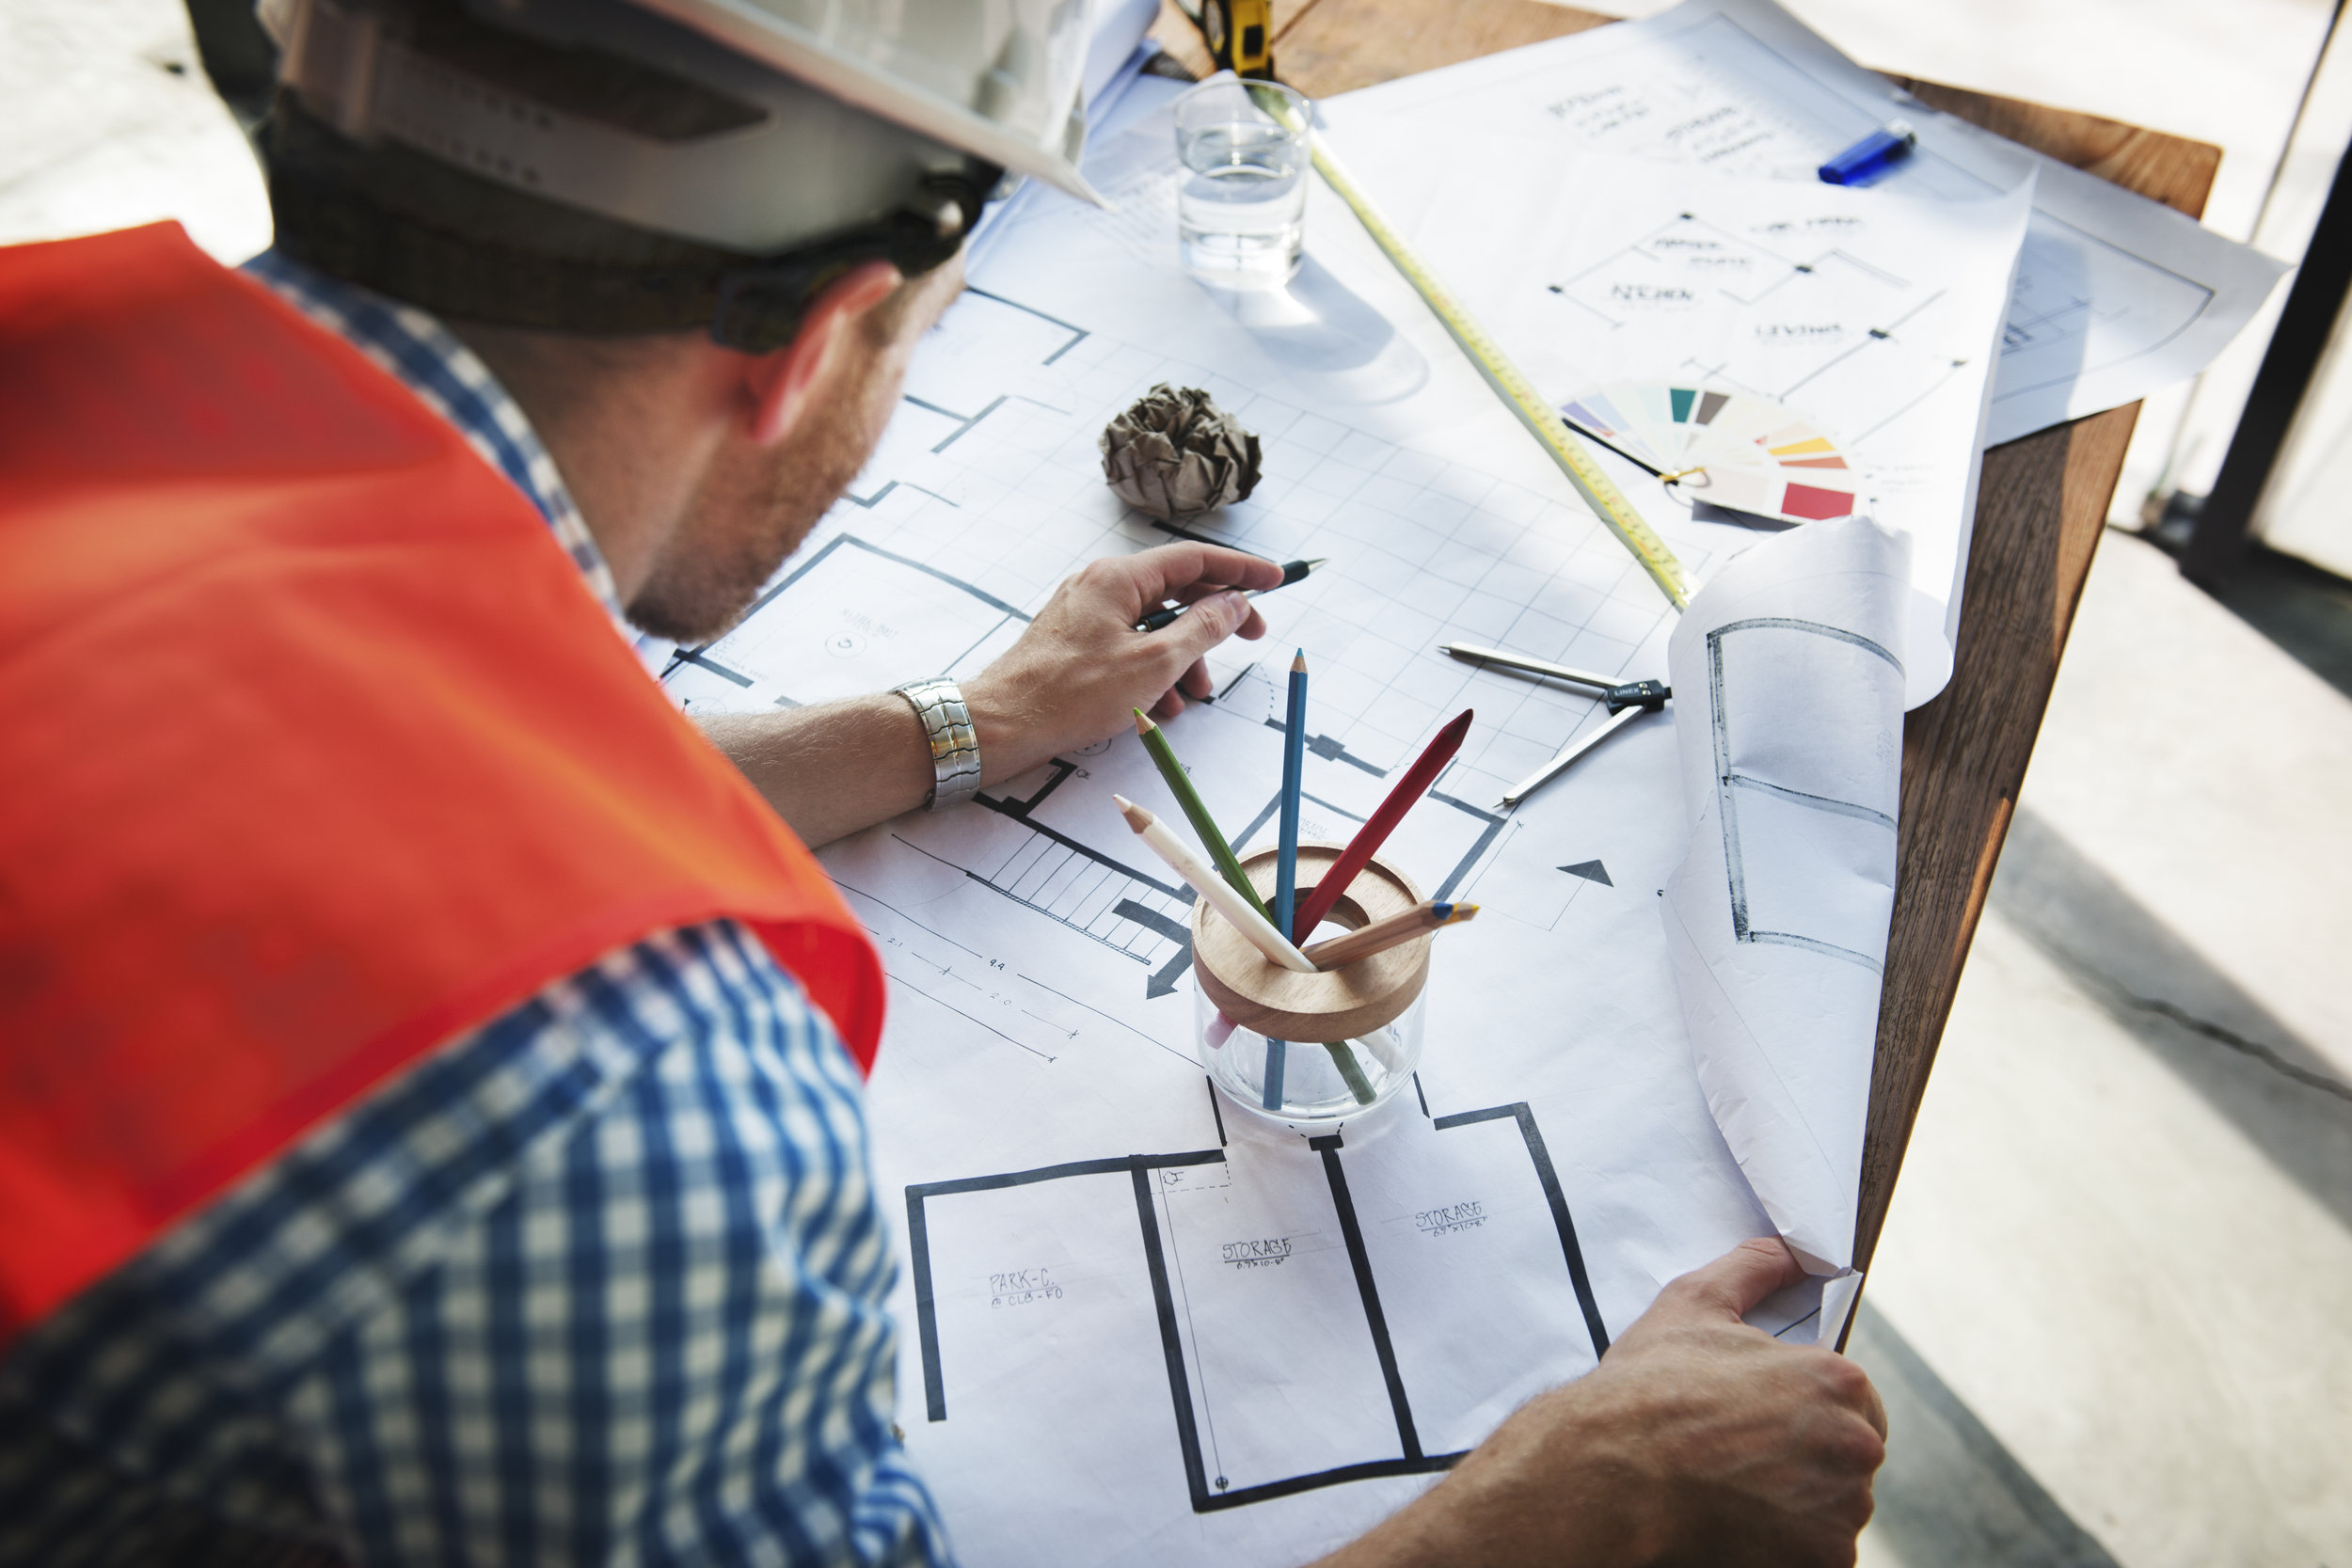 skilled - Our versatile team is capable of providing solutions to problems large and small.